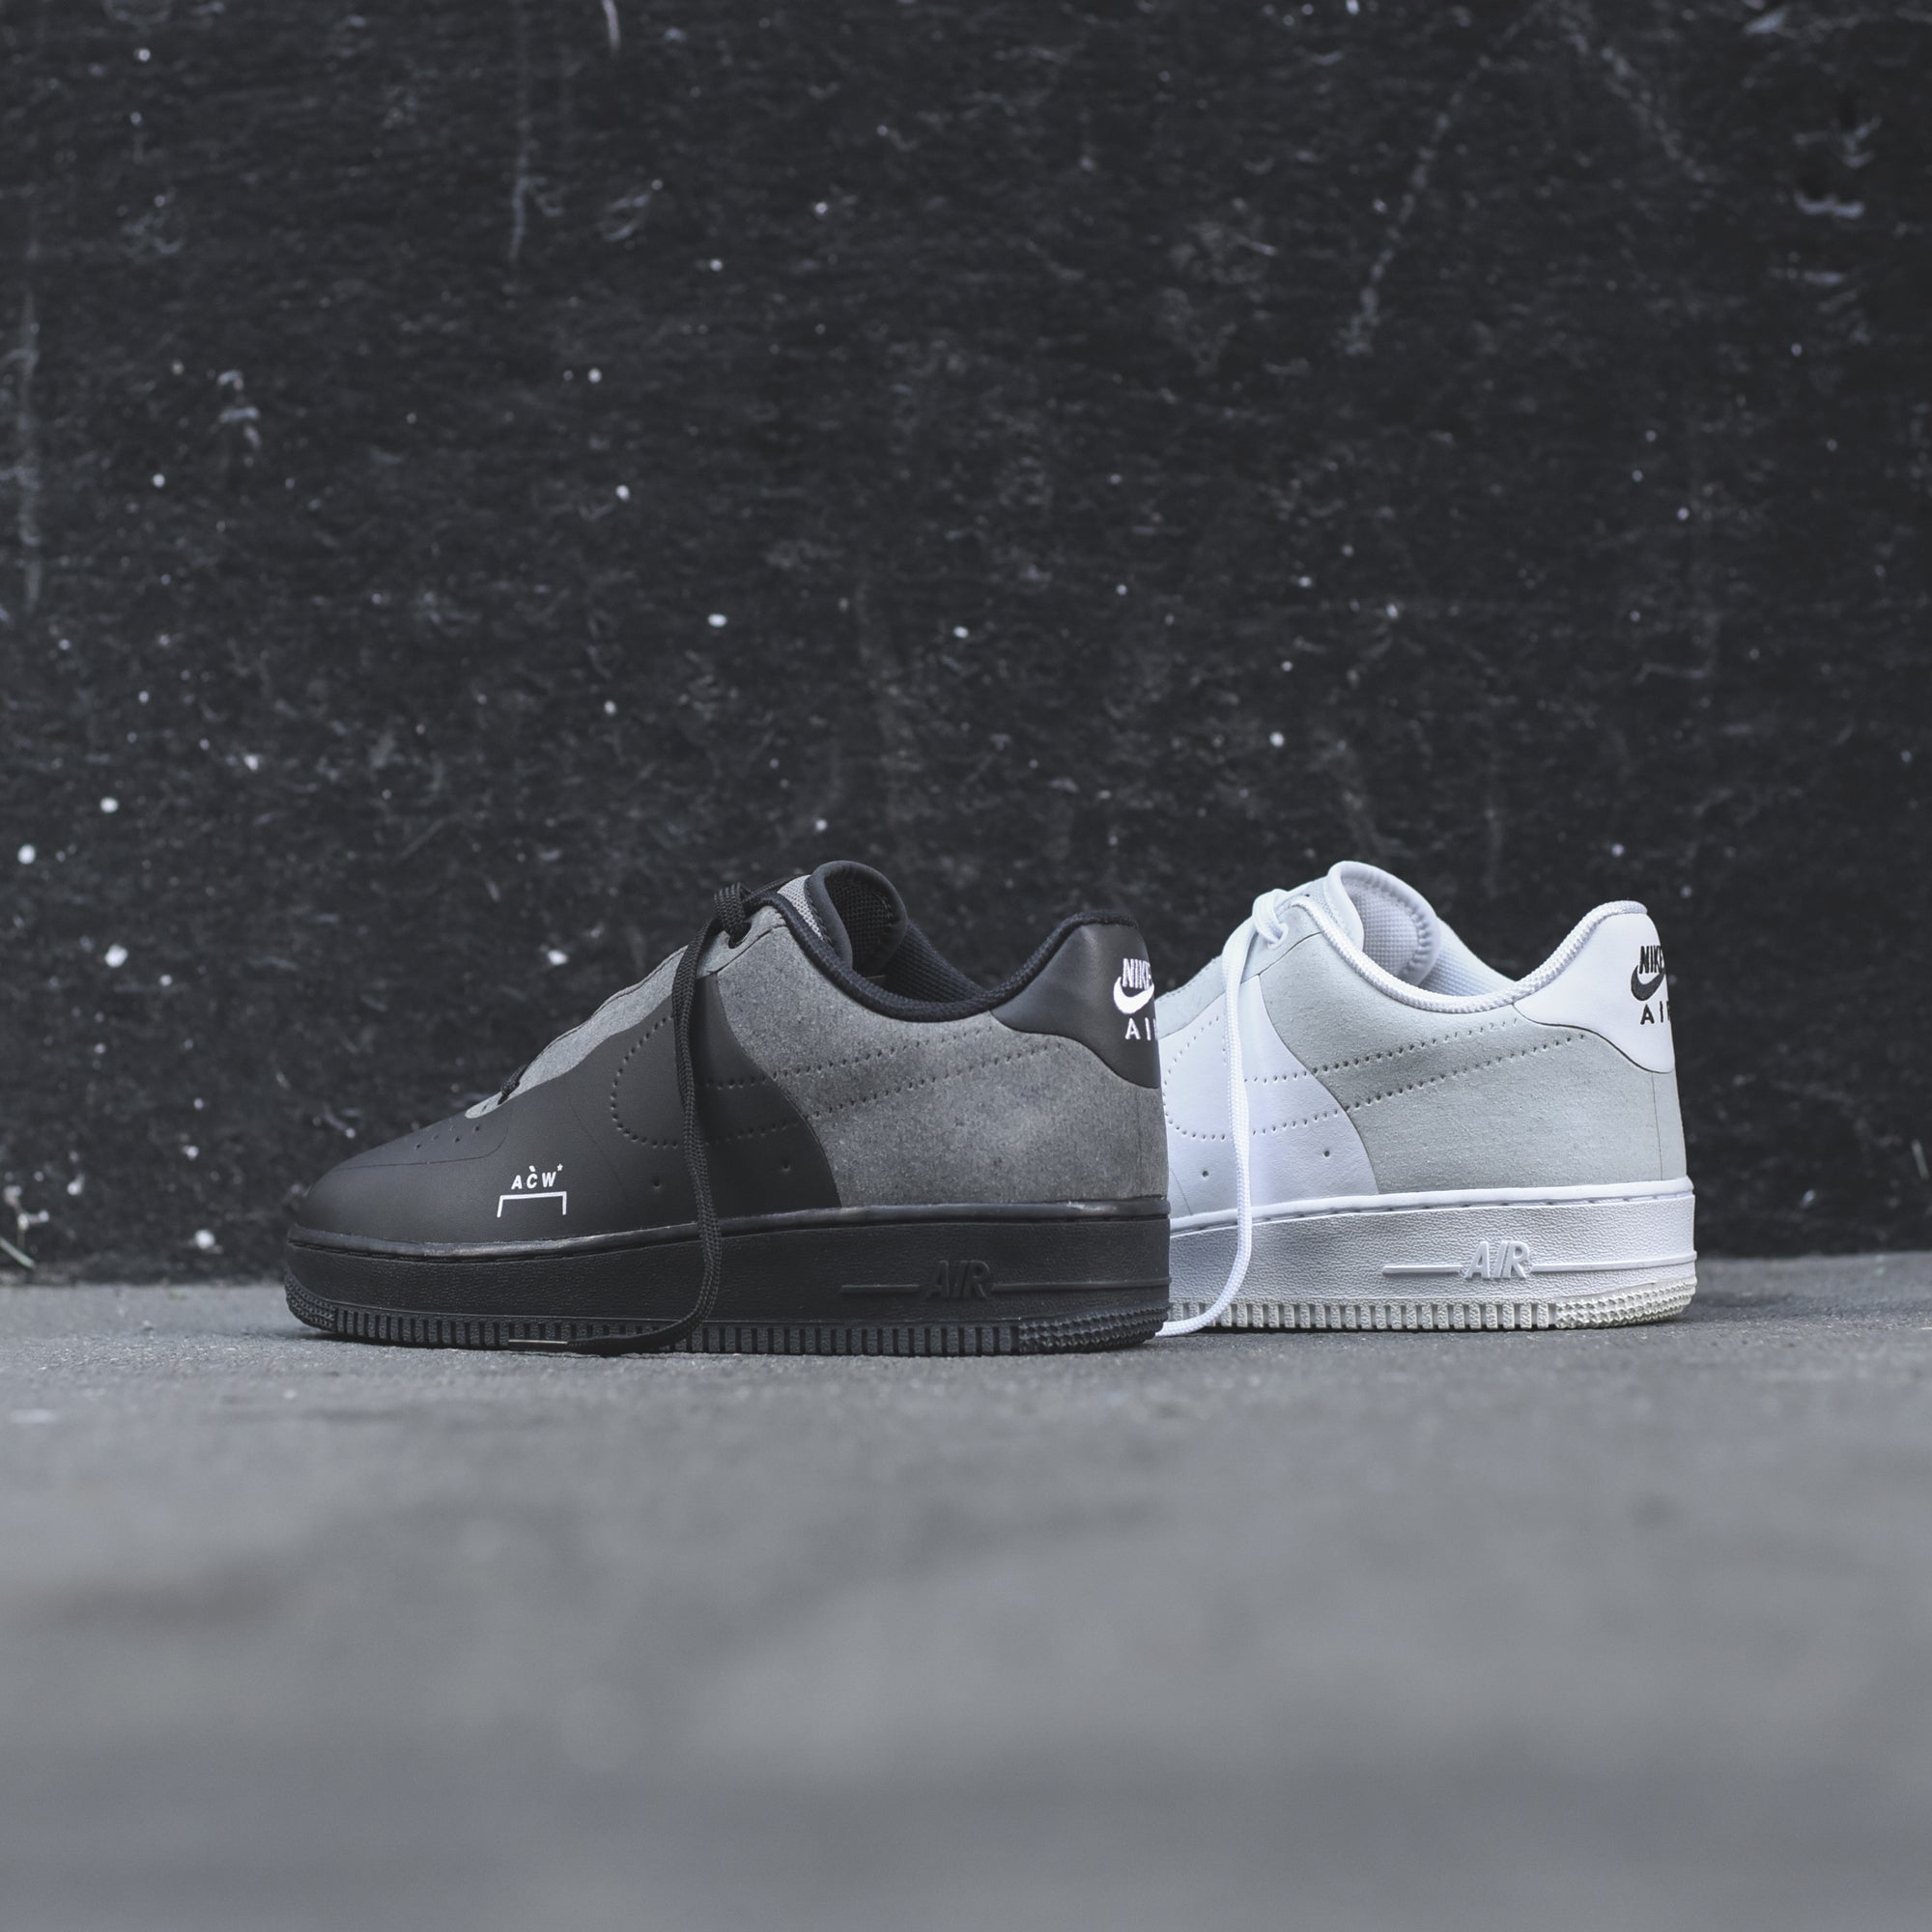 Nike x ACW Air Force 1 '07 Pack – Kith